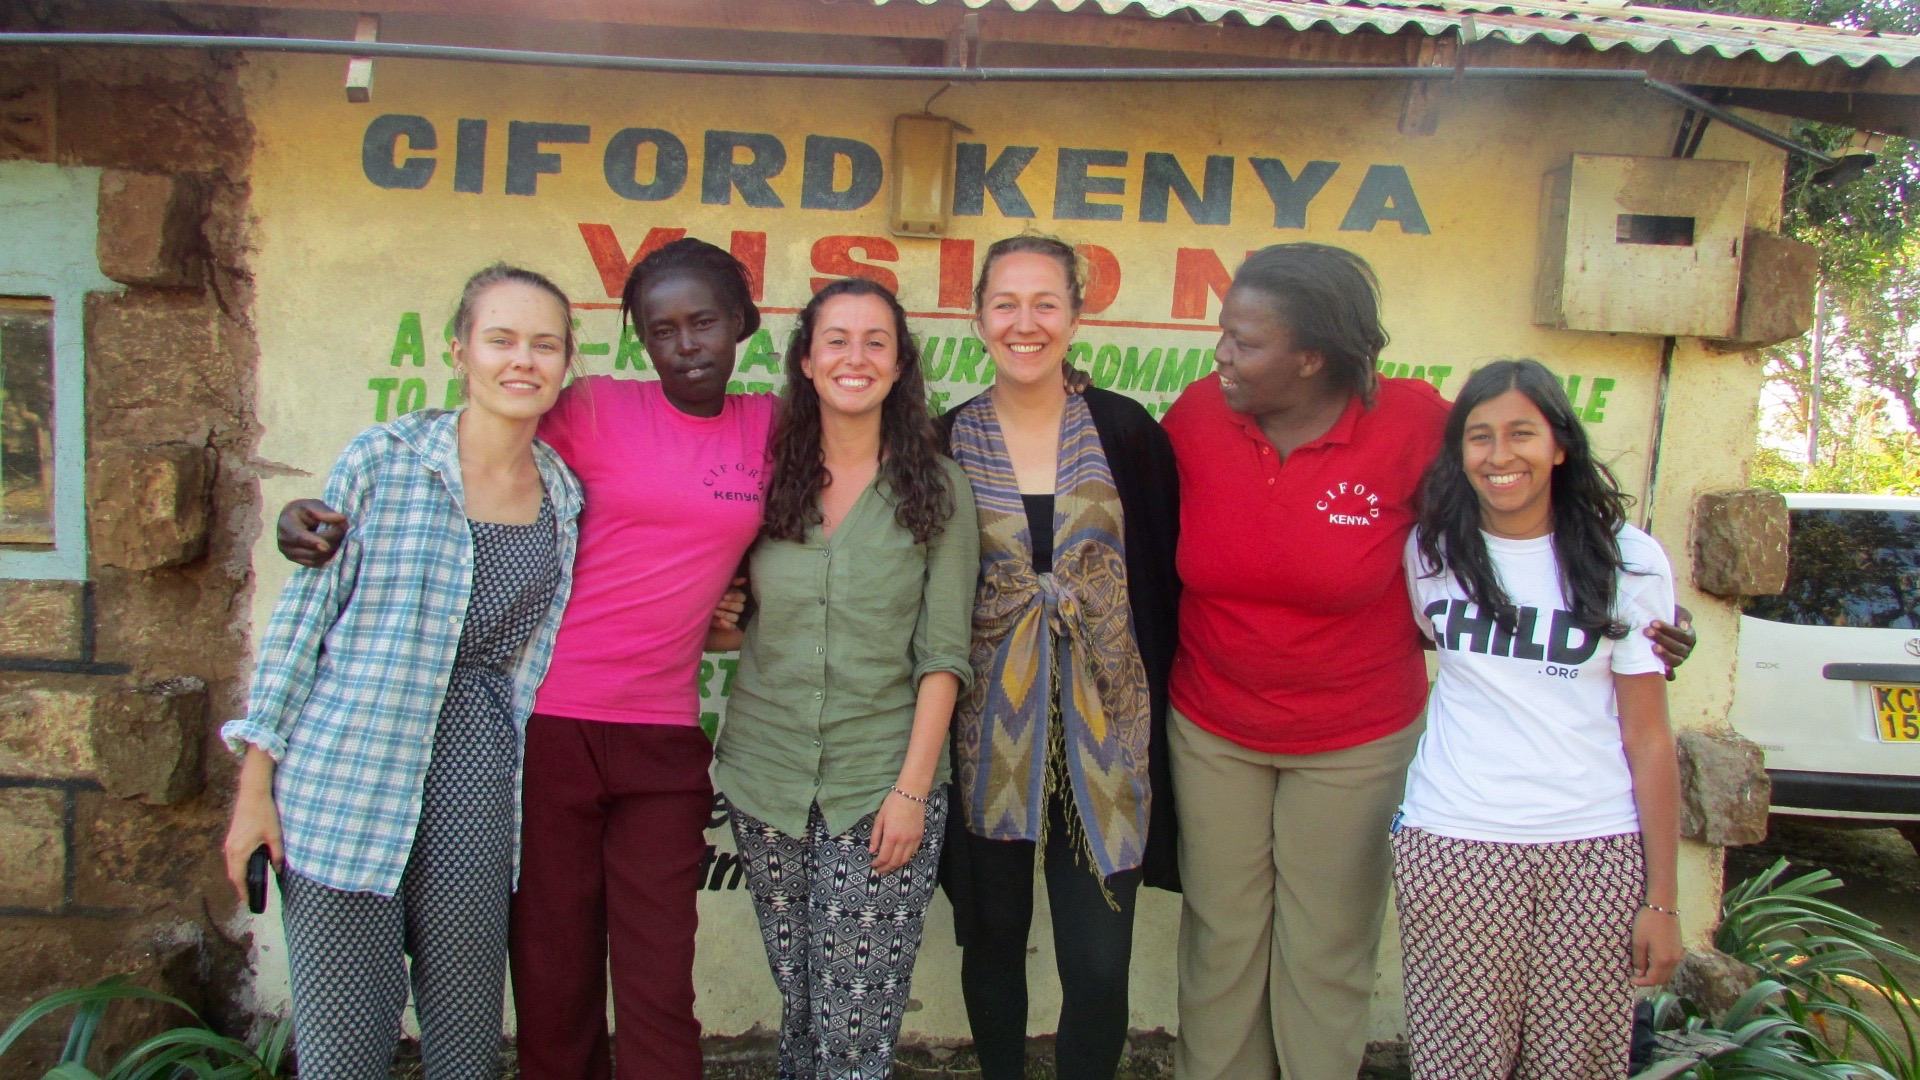 The CIFORD and Child.org team - (From left to right -Hannah, Aurelia, Annabel, Anna, Margaret and Anjali)